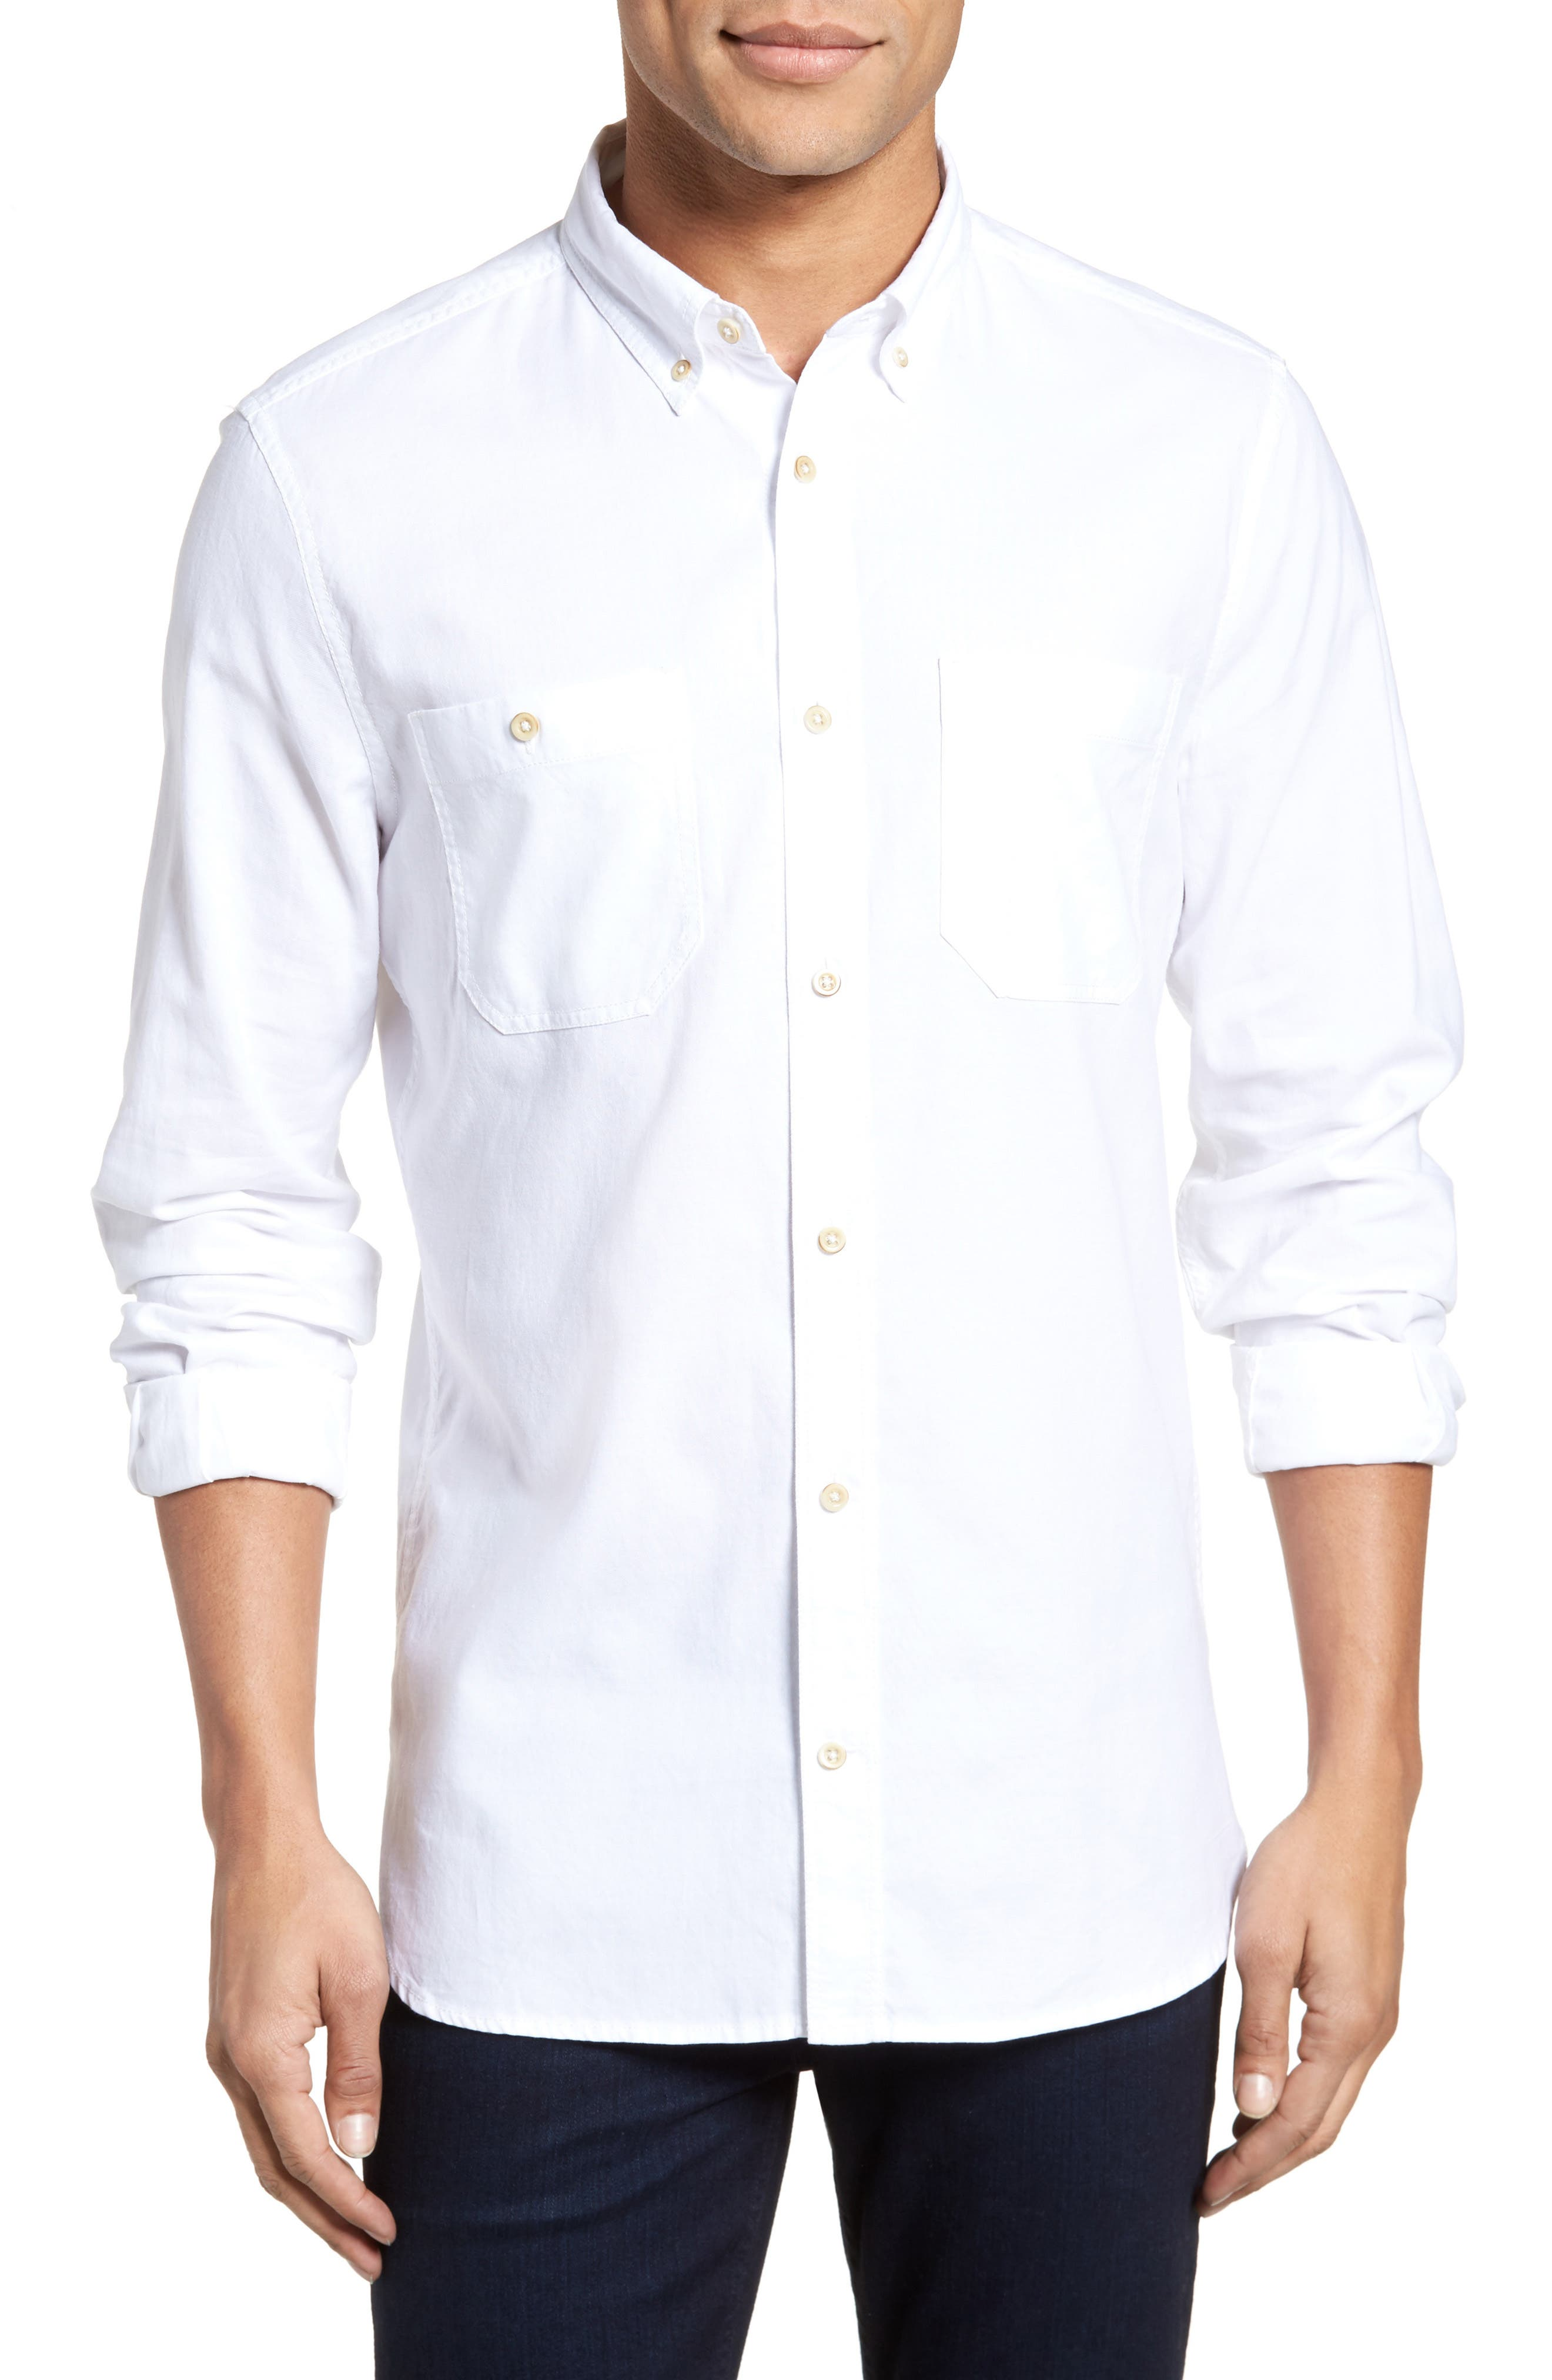 Regular Fit Overwash Oxford Sports Shirt,                         Main,                         color, White